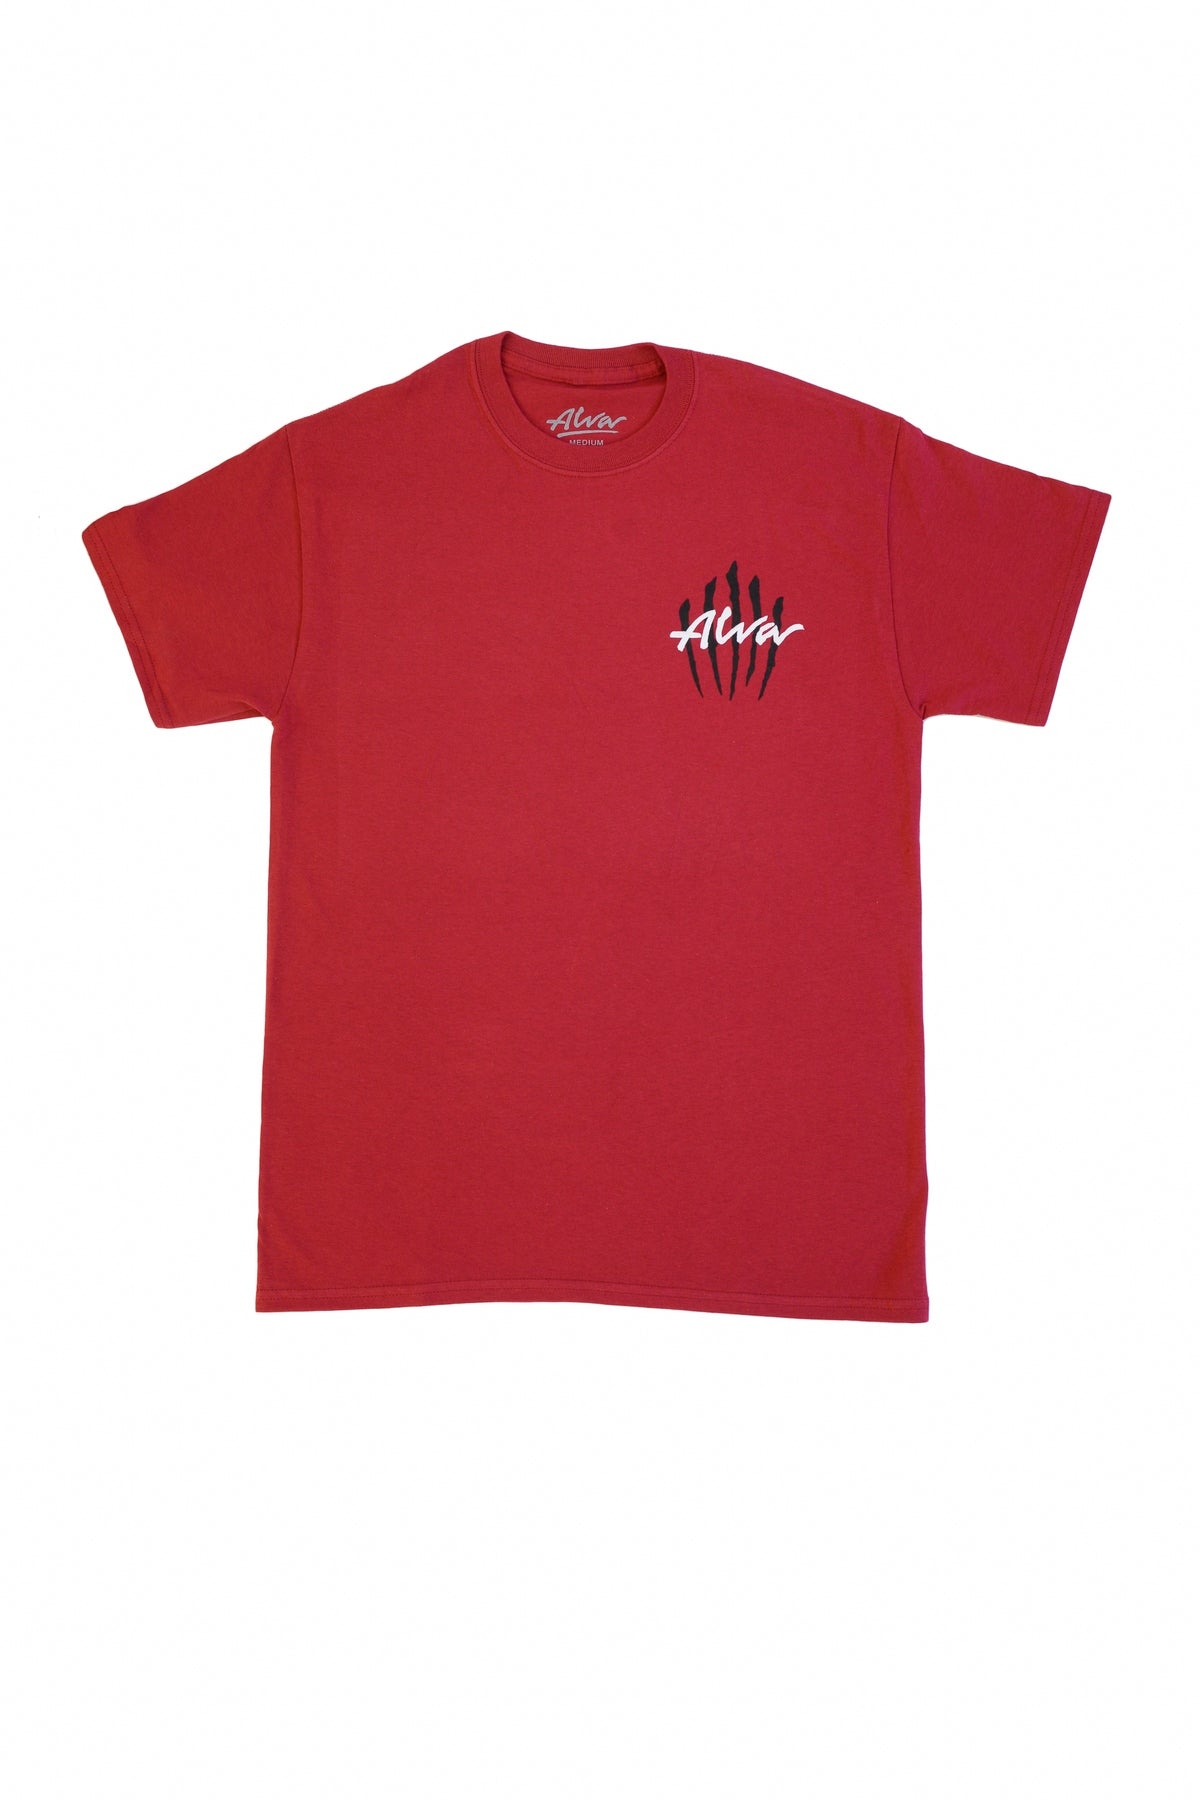 ALVA RED SCRATCH LOGO T-SHIRT